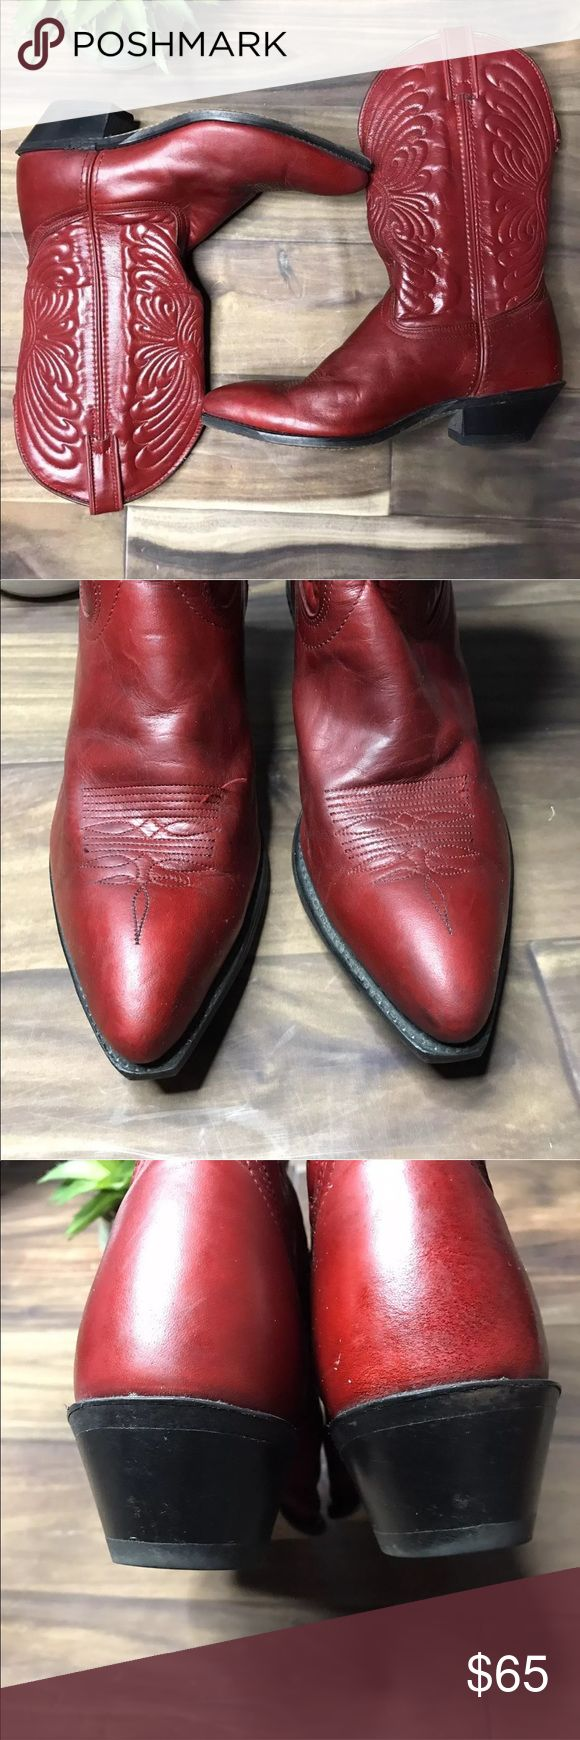 Red Laredo cowboy boots 9.5 M For sale is a good condition used pair of women's Laredo cowboy boots.  Size 9.5 M  Red in color with stitching accents throughout  The leather shaft has a fabric lining for added comfort  Rubber soles for durability  Please look at all pictures for details Laredo Shoes Ankle Boots & Booties